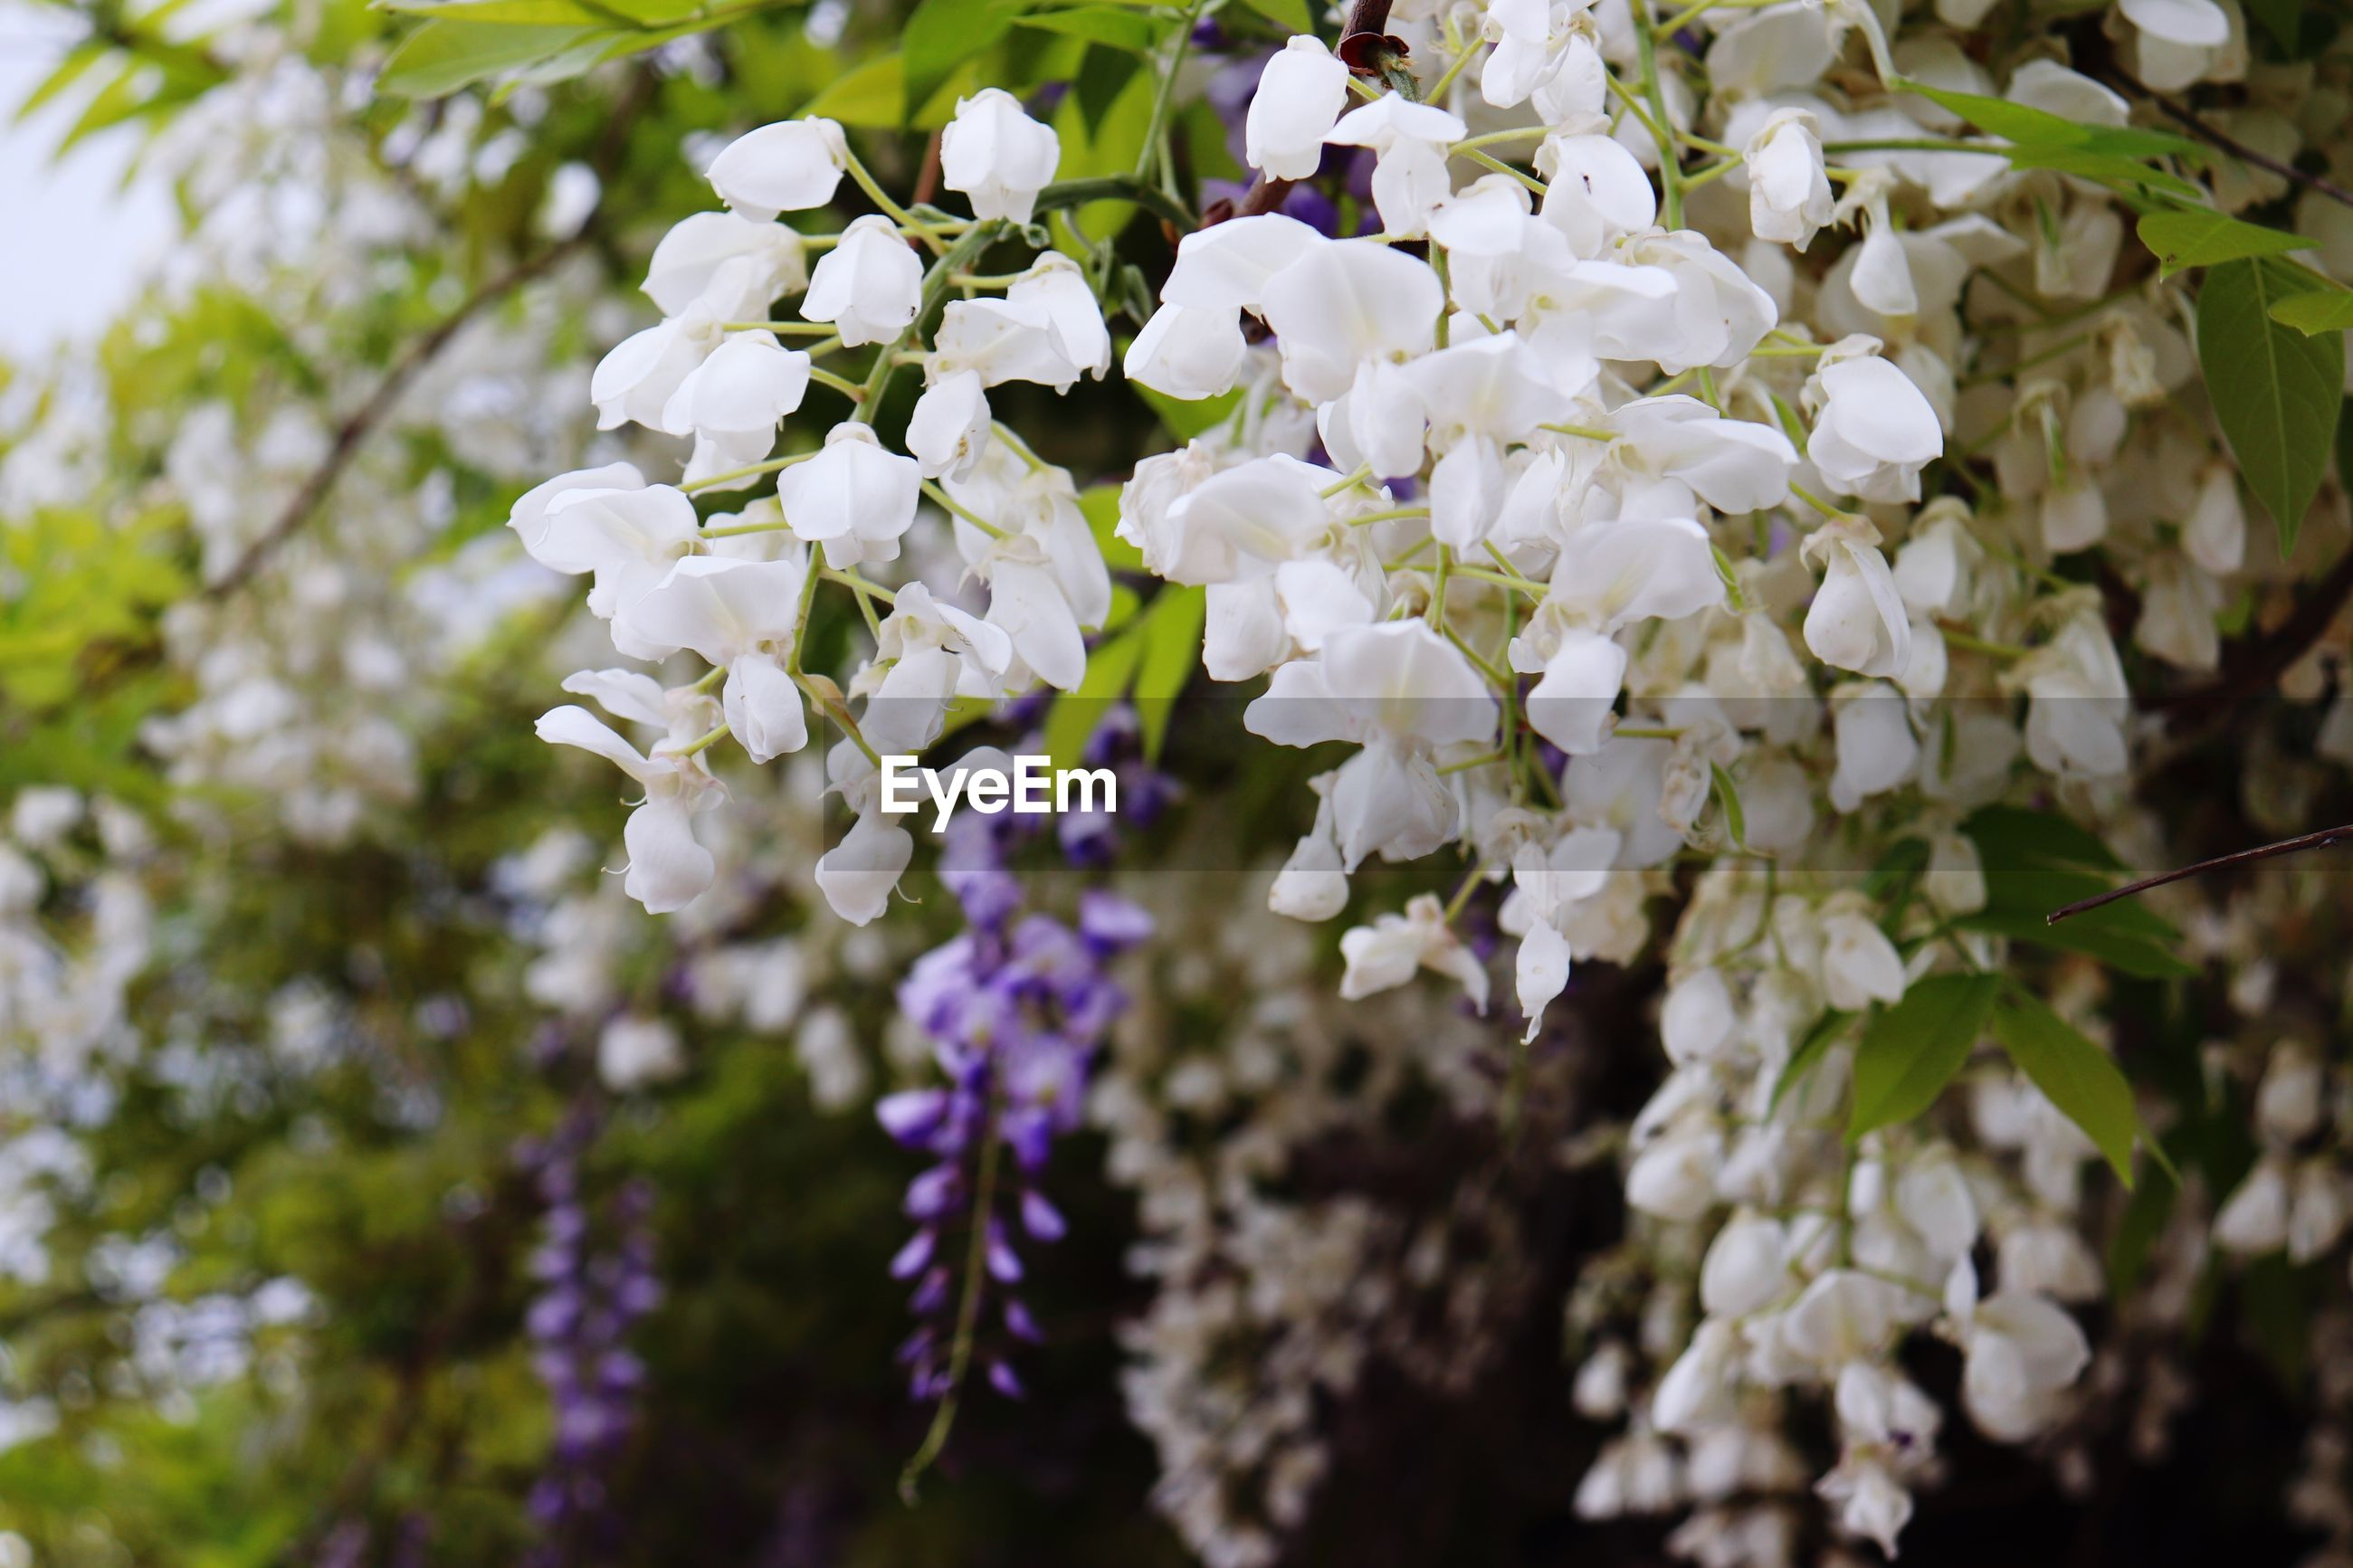 flower, flowering plant, plant, fragility, vulnerability, beauty in nature, freshness, growth, white color, close-up, petal, no people, nature, day, focus on foreground, tree, blossom, botany, selective focus, springtime, outdoors, flower head, lilac, cherry blossom